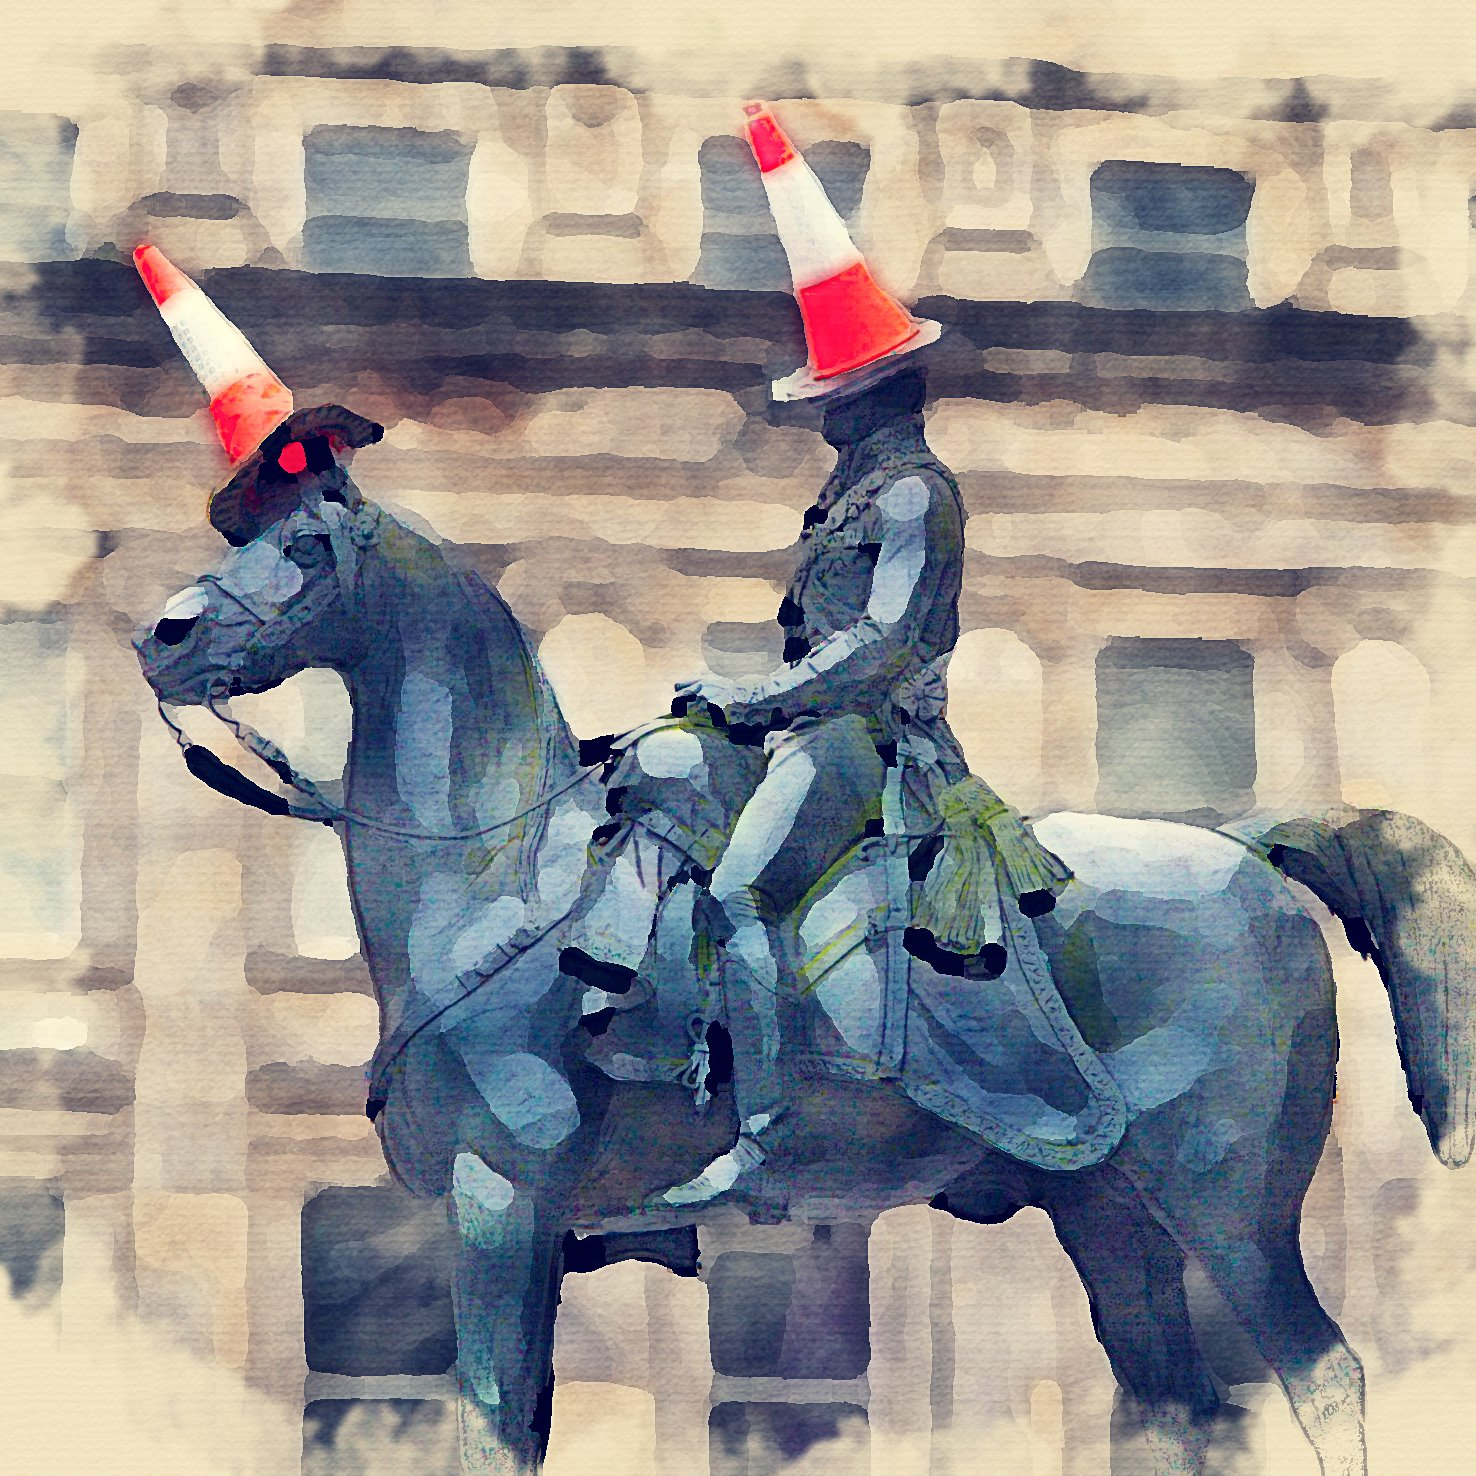 Wall Art Watercolour Print of Duke of Wellington | with Stylish Contemporary 23x23cm Frame 24 Images of Glasgow